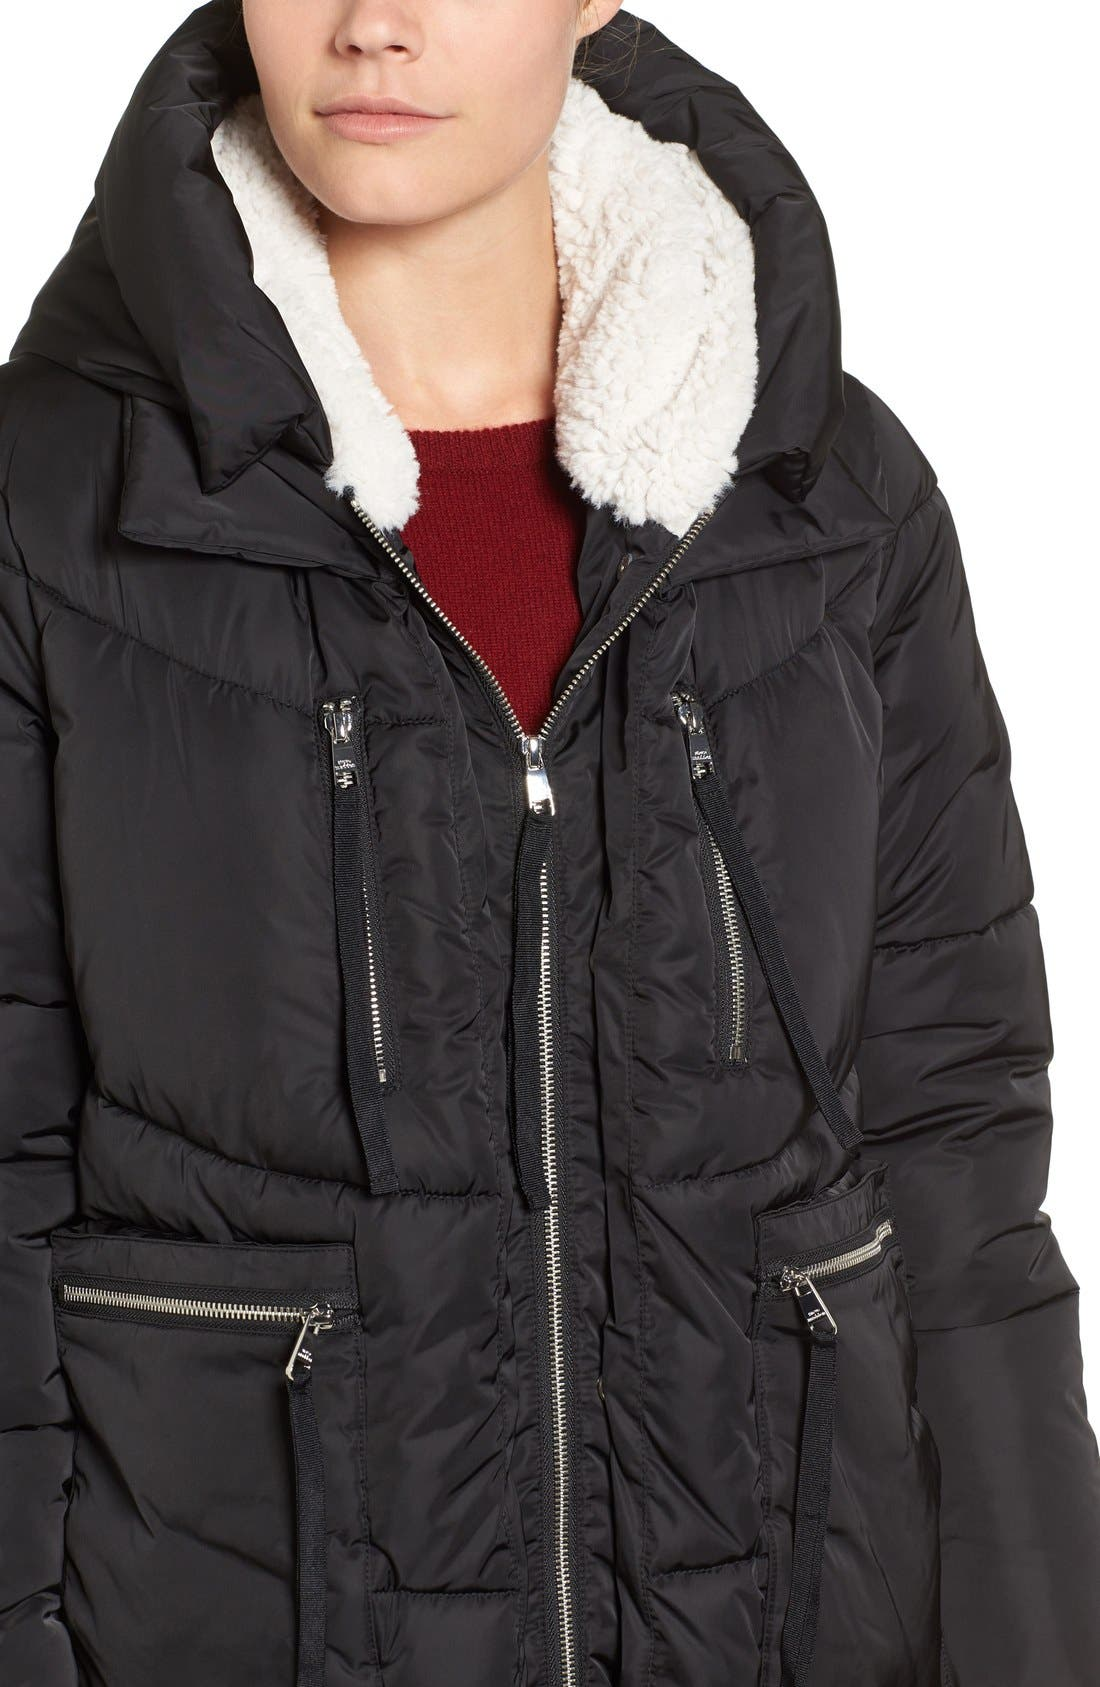 Hooded Puffer Jacket with Faux Shearling Trim,                             Alternate thumbnail 15, color,